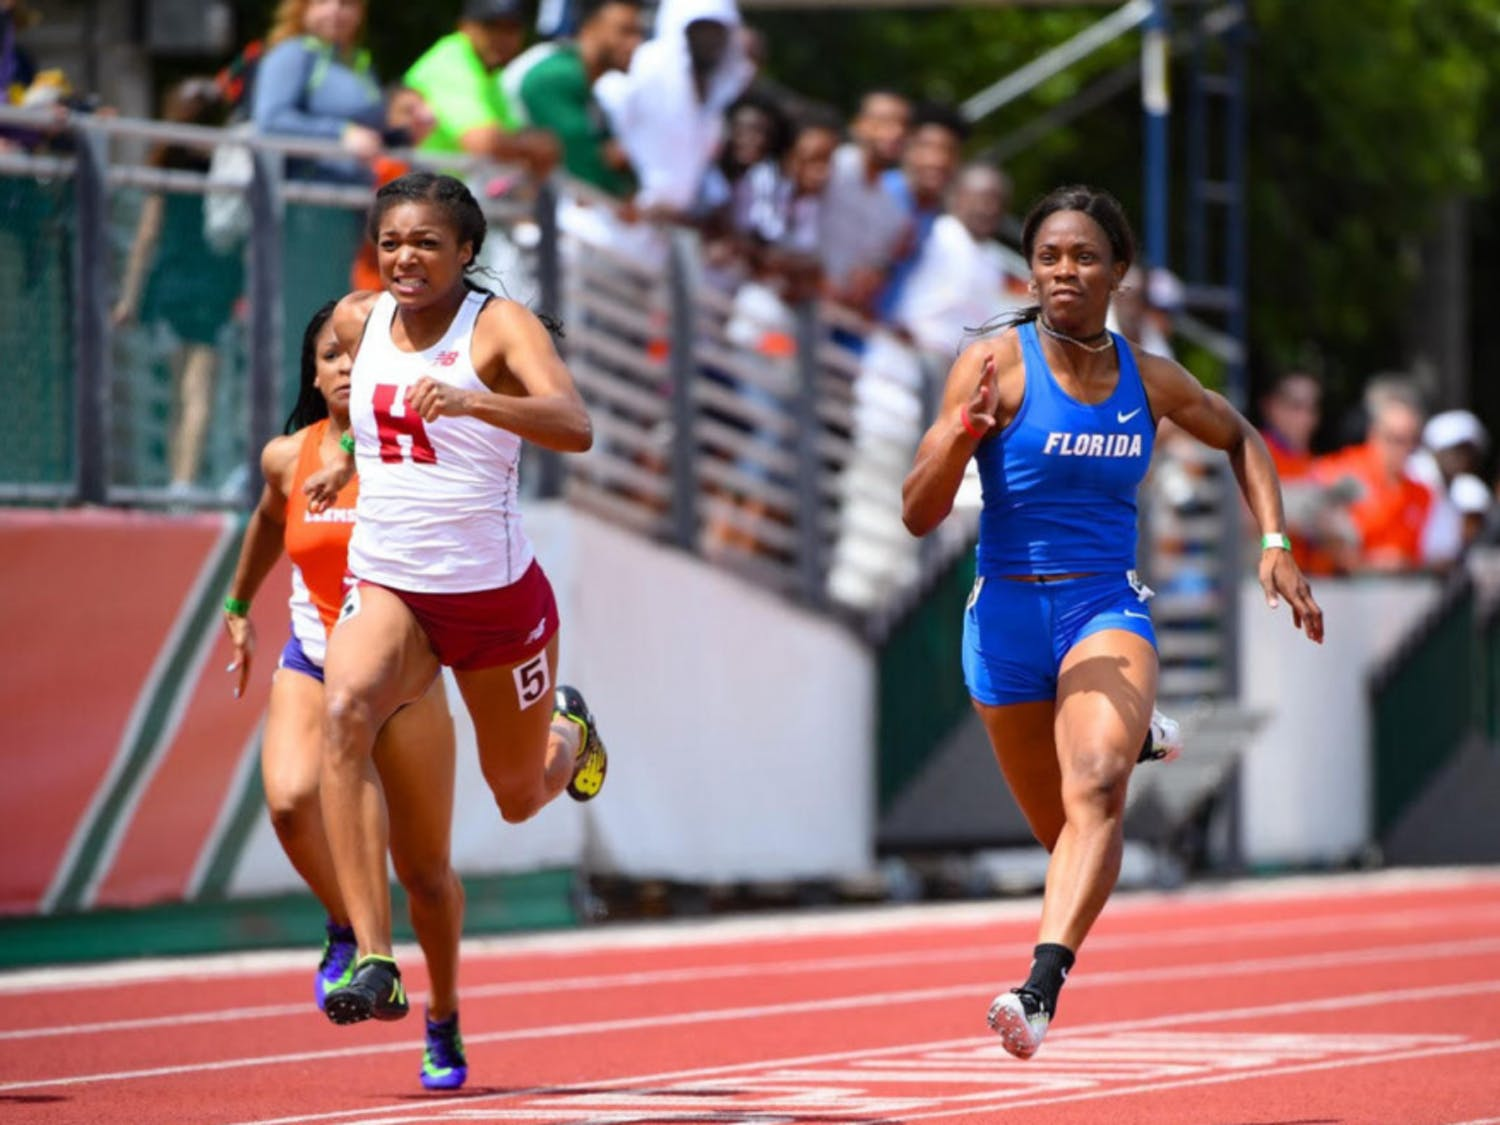 Shayla Sanders runs the 100-meter dash at the Hurricane College Invitational on March 25, 2017.